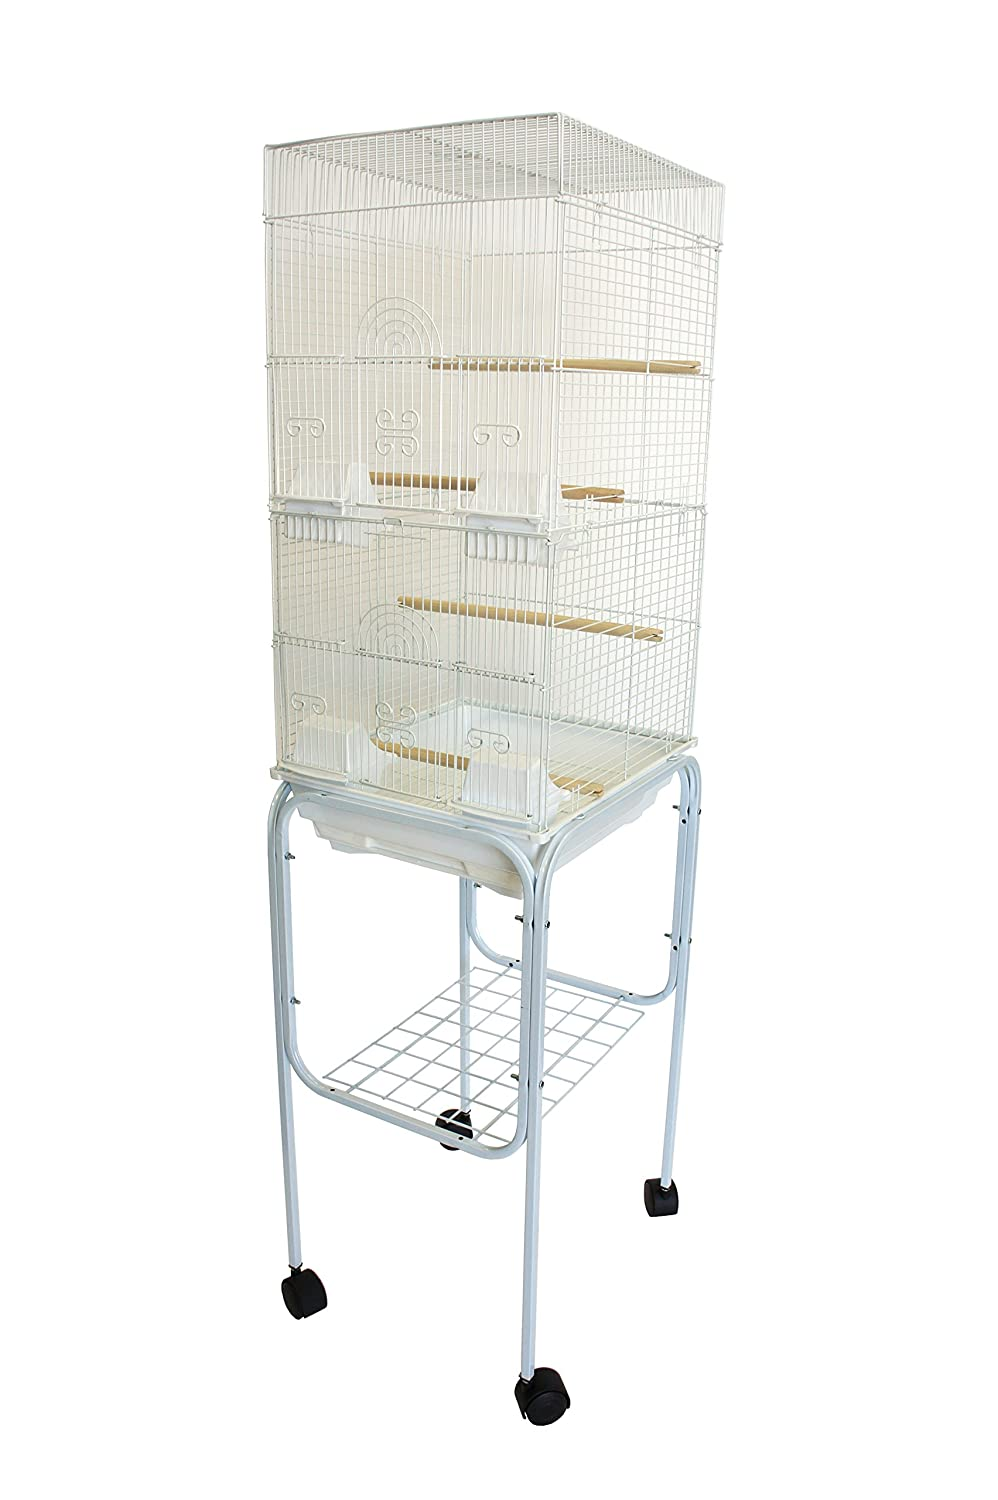 Yml 6624 3/8-Inch Bar Spacing Tall Square 4 Perchs Bird Cage with Stand, White 6624_4614WHT